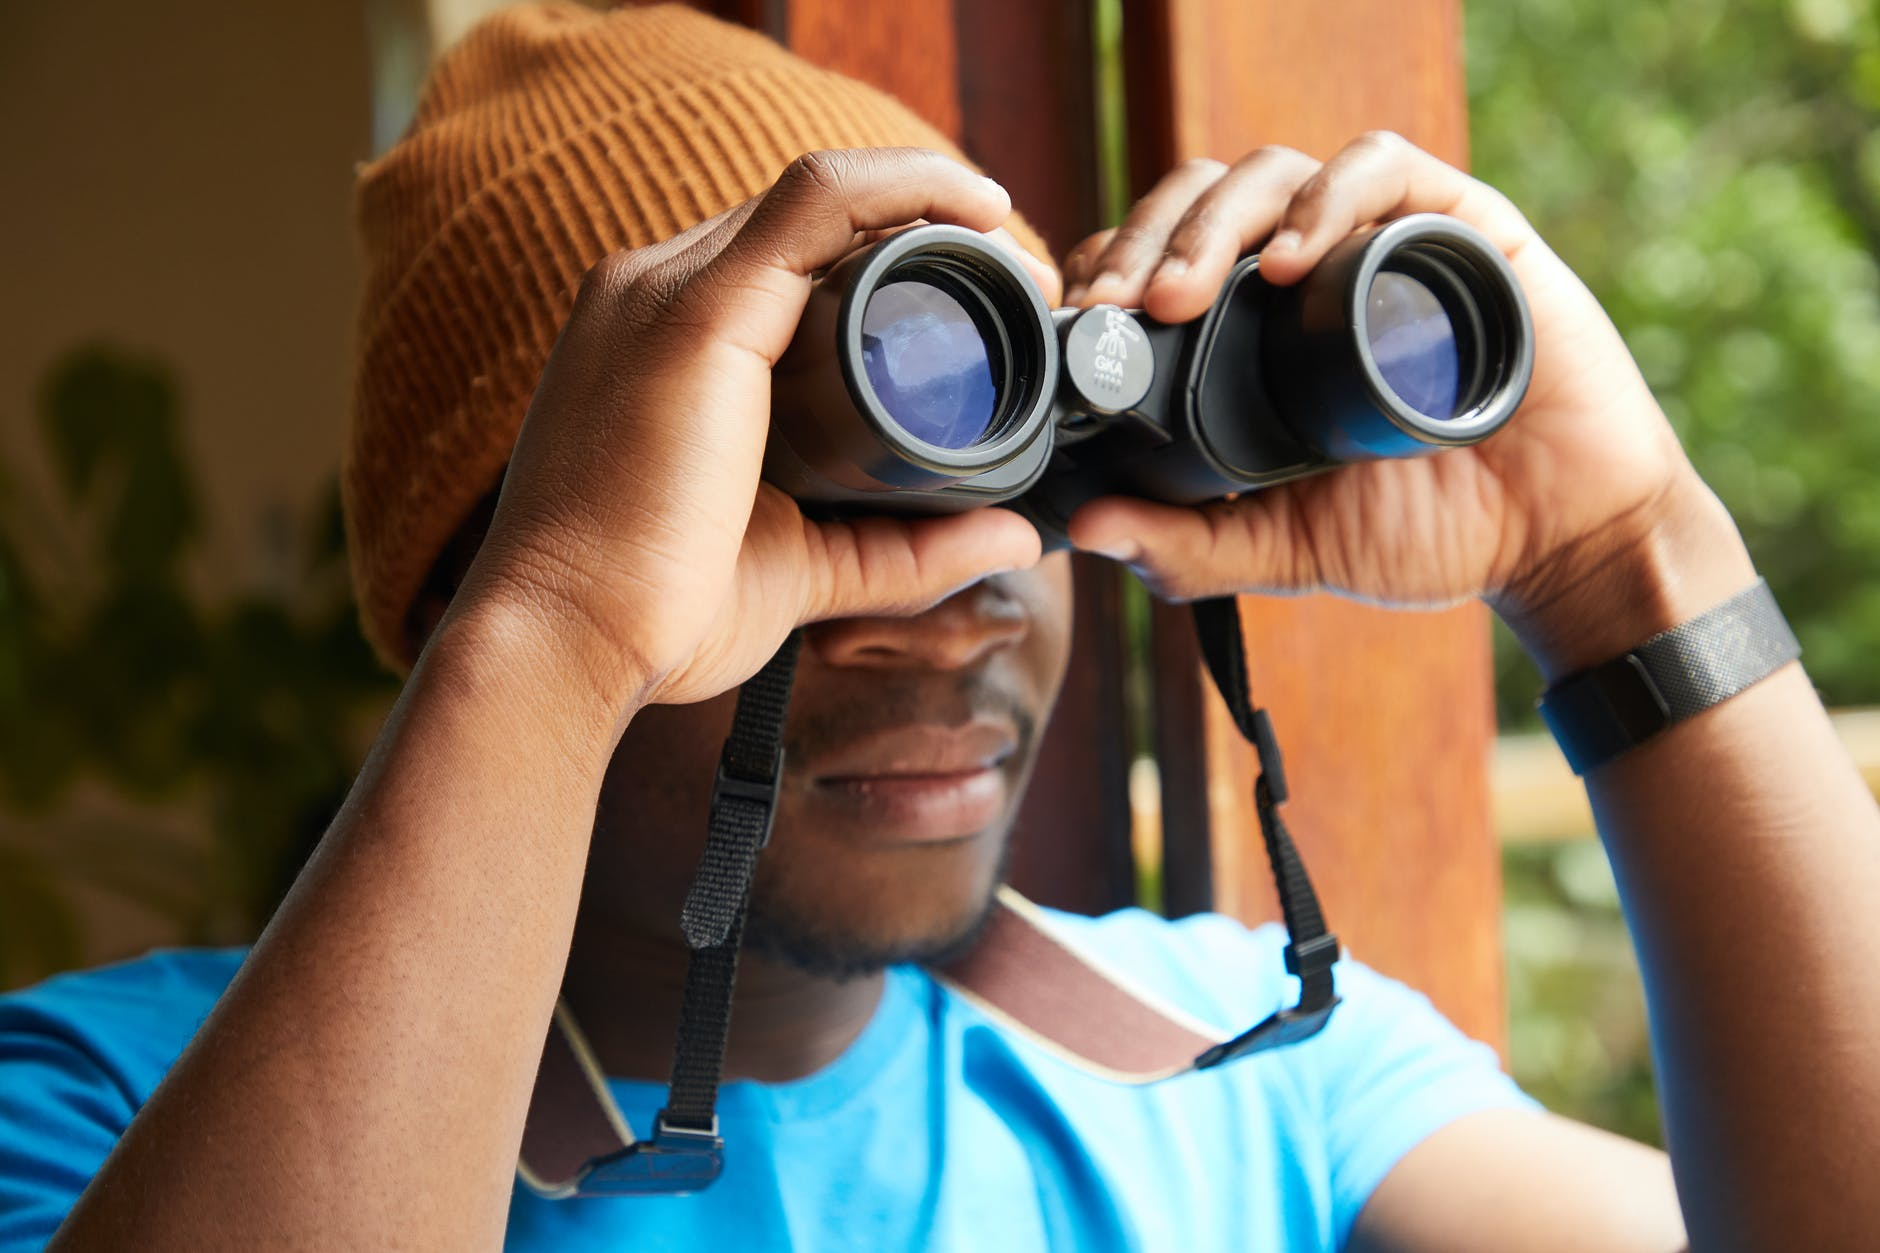 black man with binoculars near window